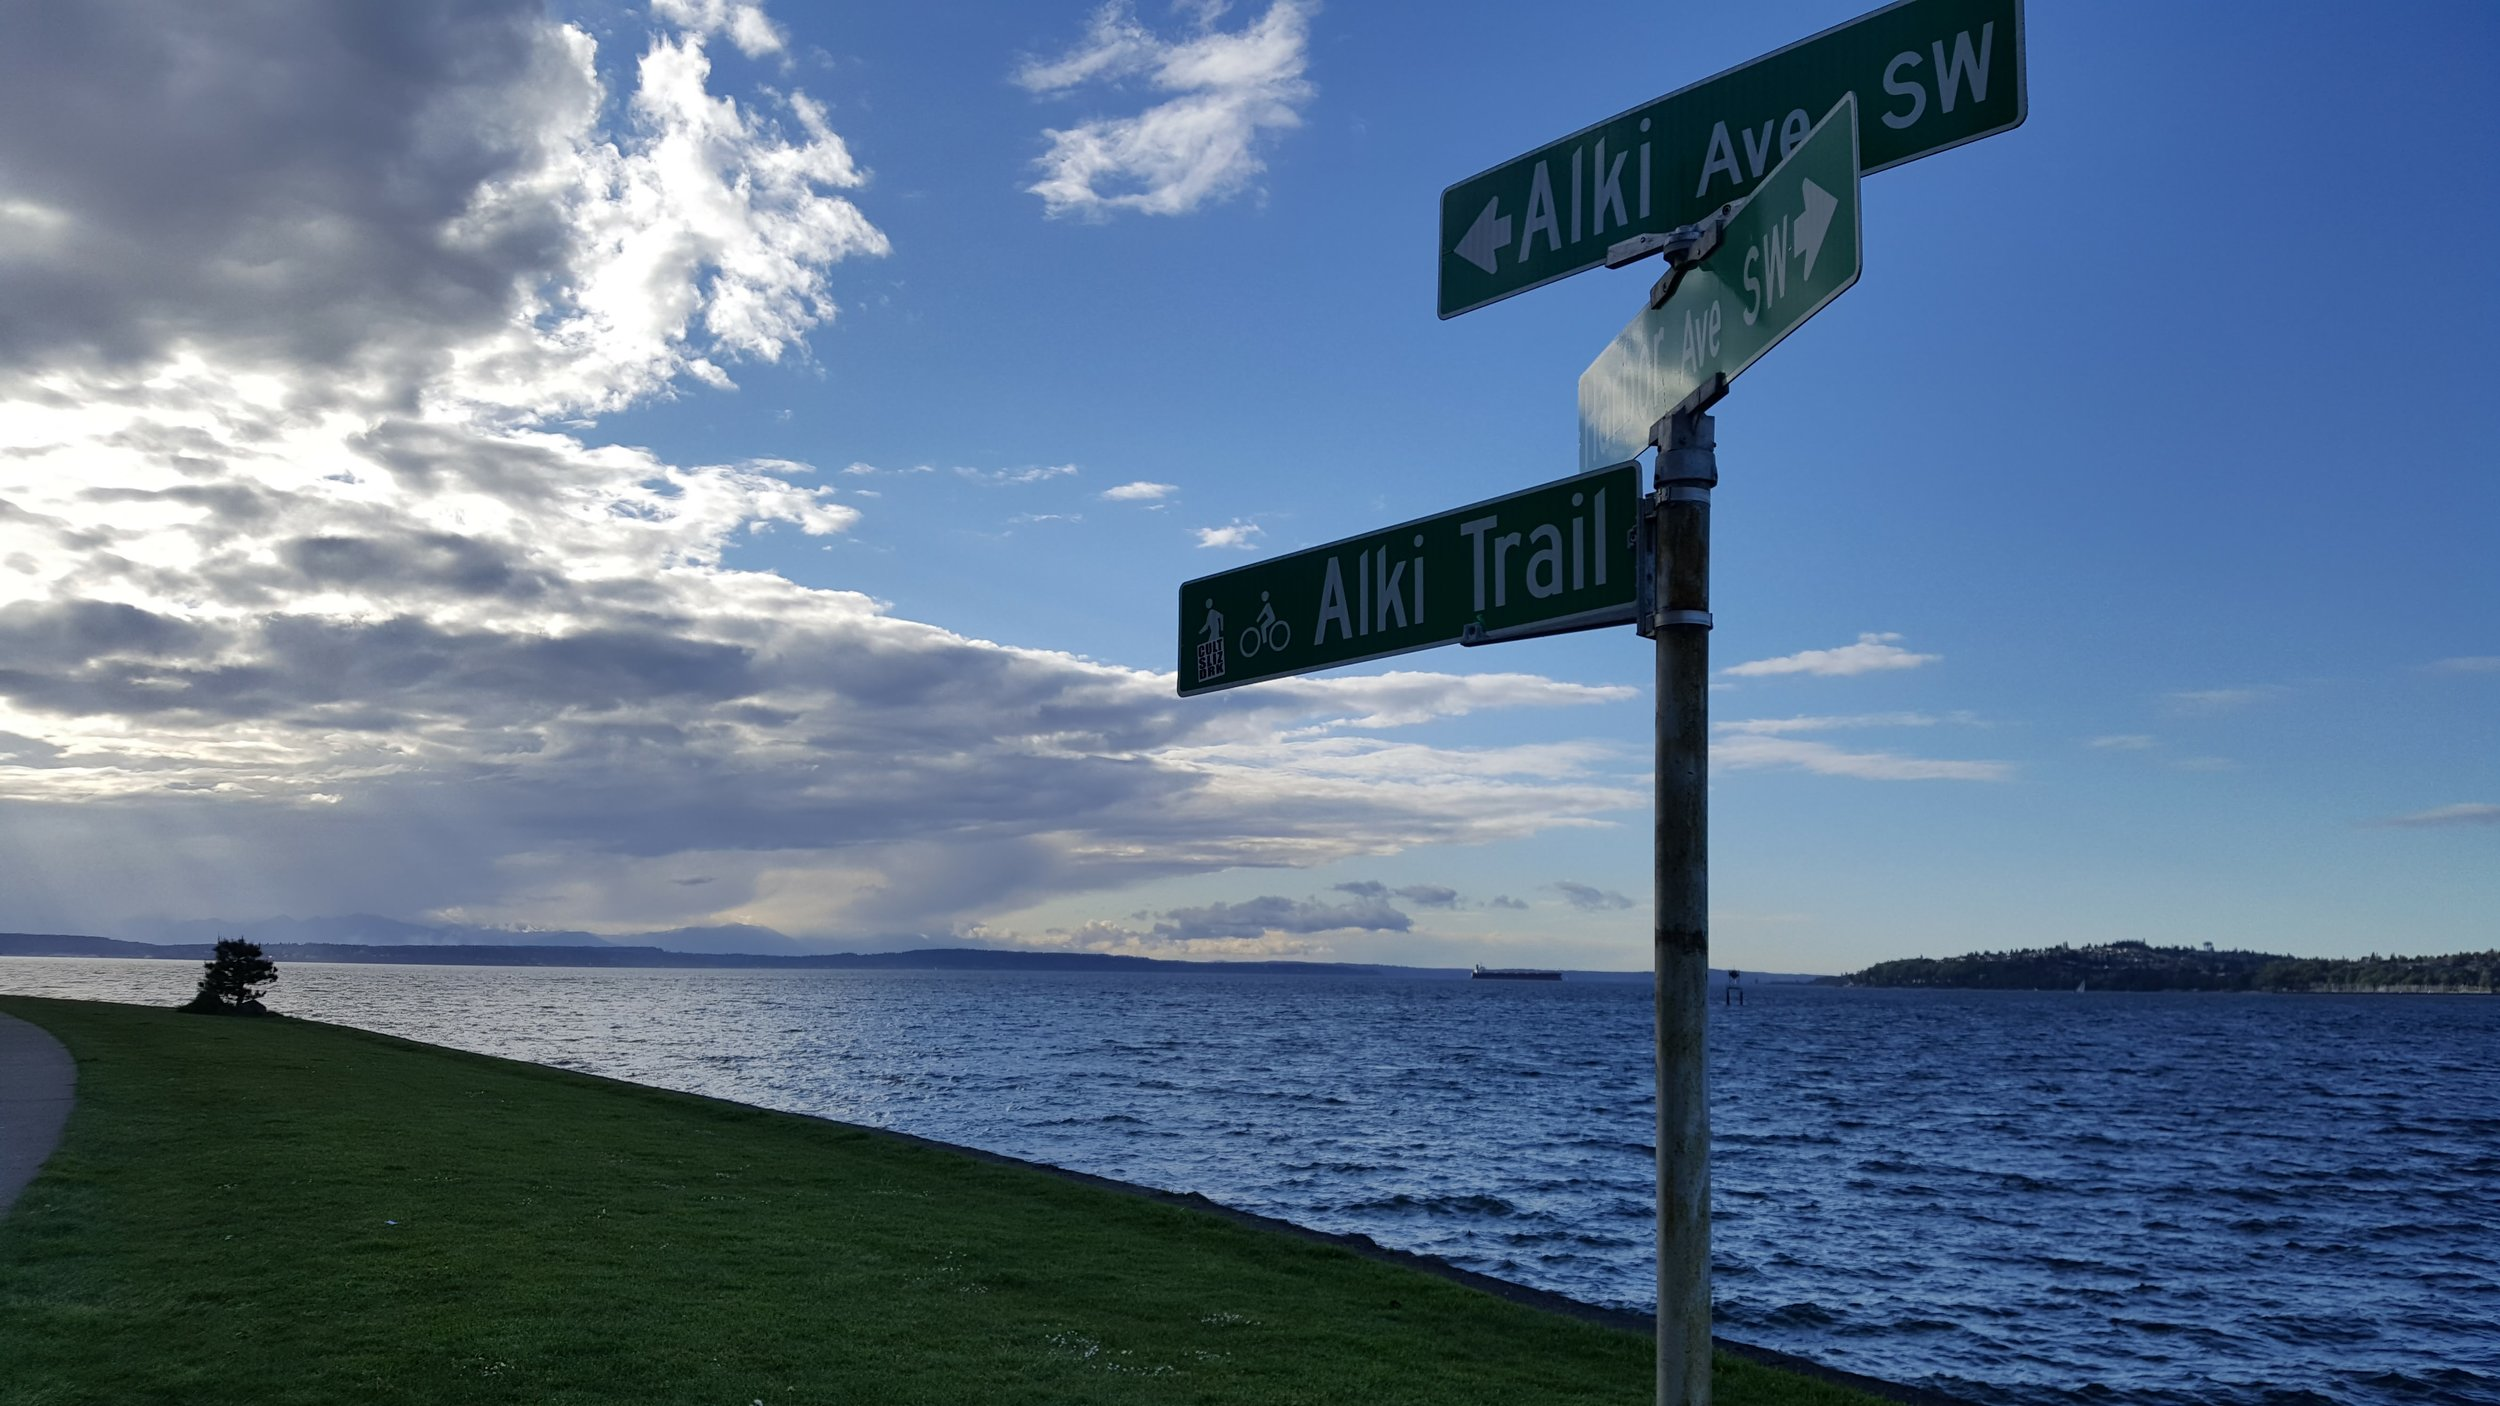 The settlers arrived in 1851. - You can learn more about Alki's history here